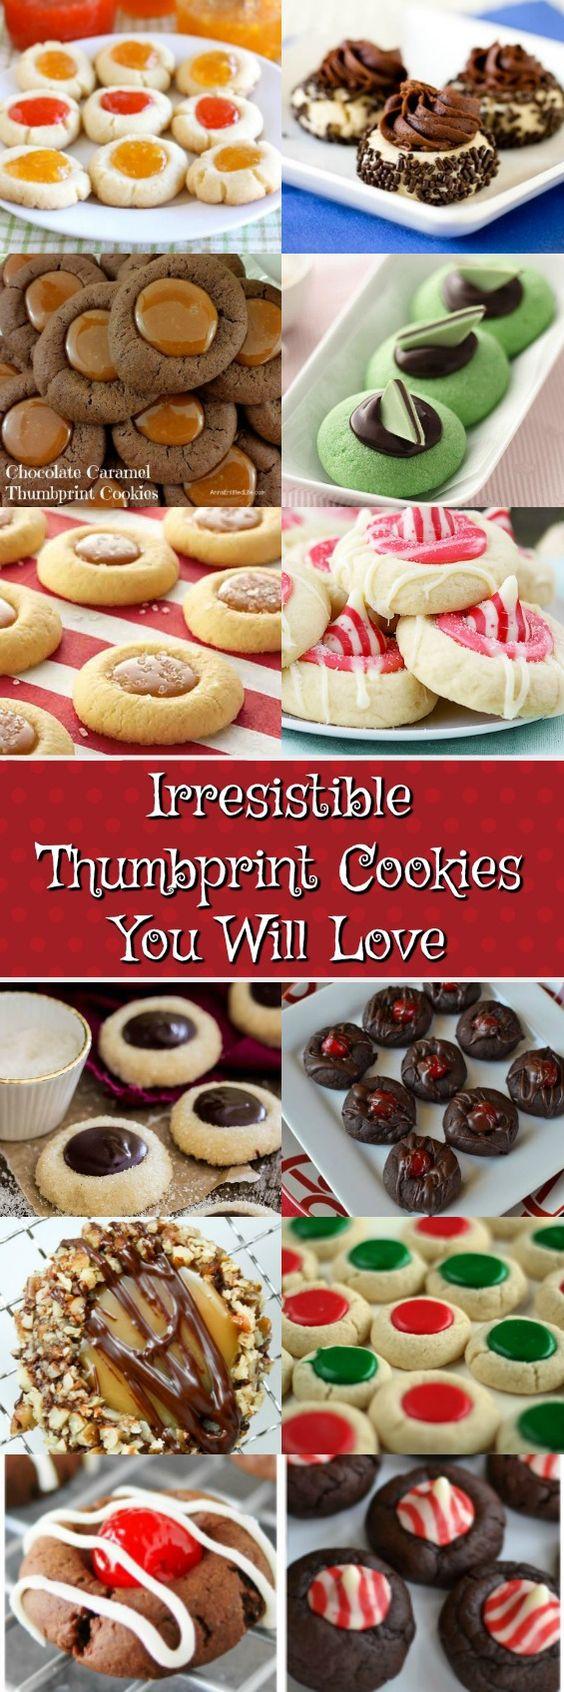 Thumbprint Cookies are the perfect cookies for any occasion! There are so many different kinds to make. Who knew?! Fill up your Christmas Cookie Tray, Make a gift tray for friends, great for cookie swaps or just because you want to make some delicious treats to keep in the house. Enjoy one or enjoy them all.